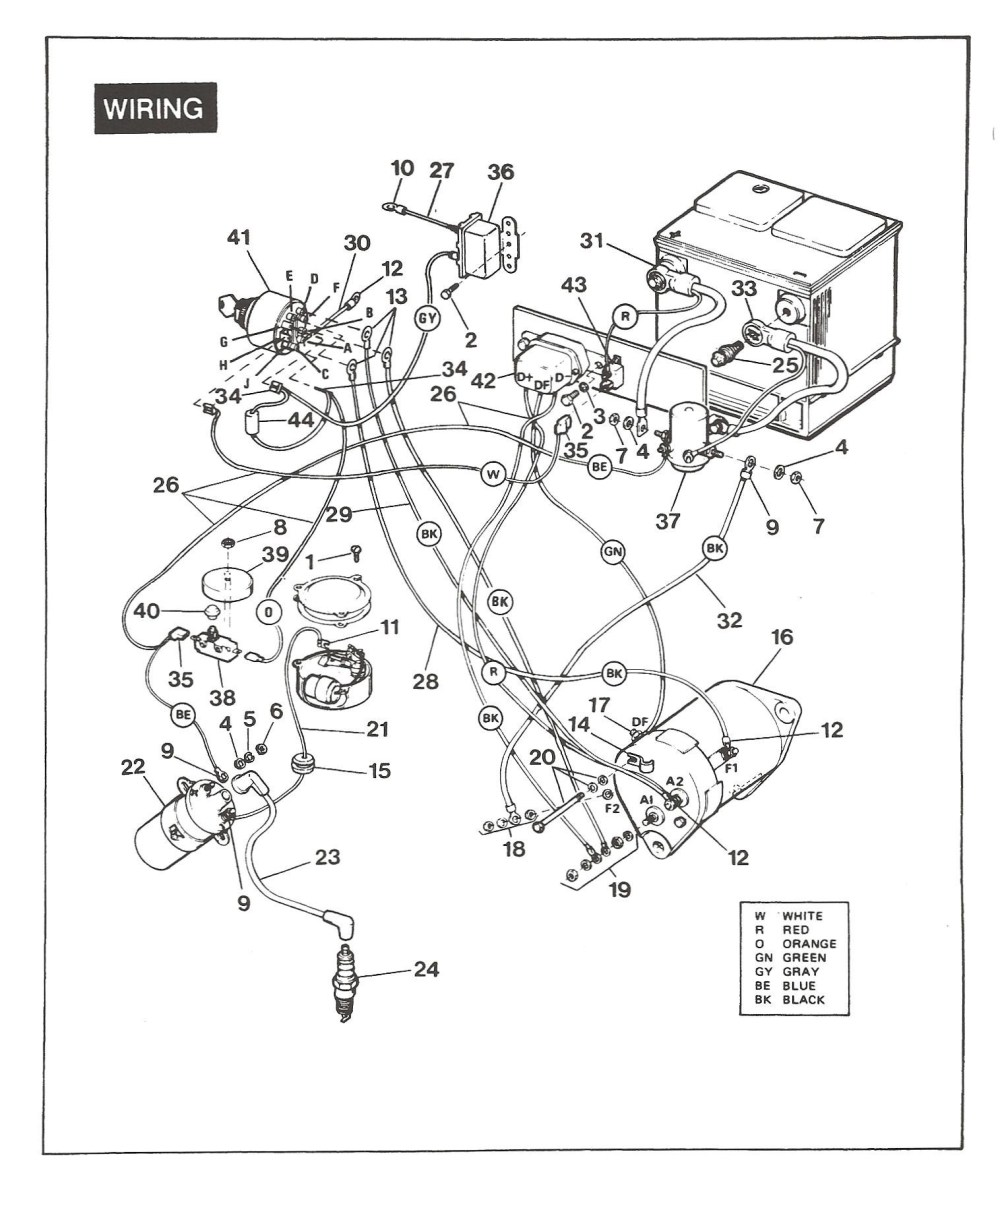 medium resolution of ez go golf cart battery wiring diagram sch n 1984 ezgo schaltplan galerie schaltplan serie circuit